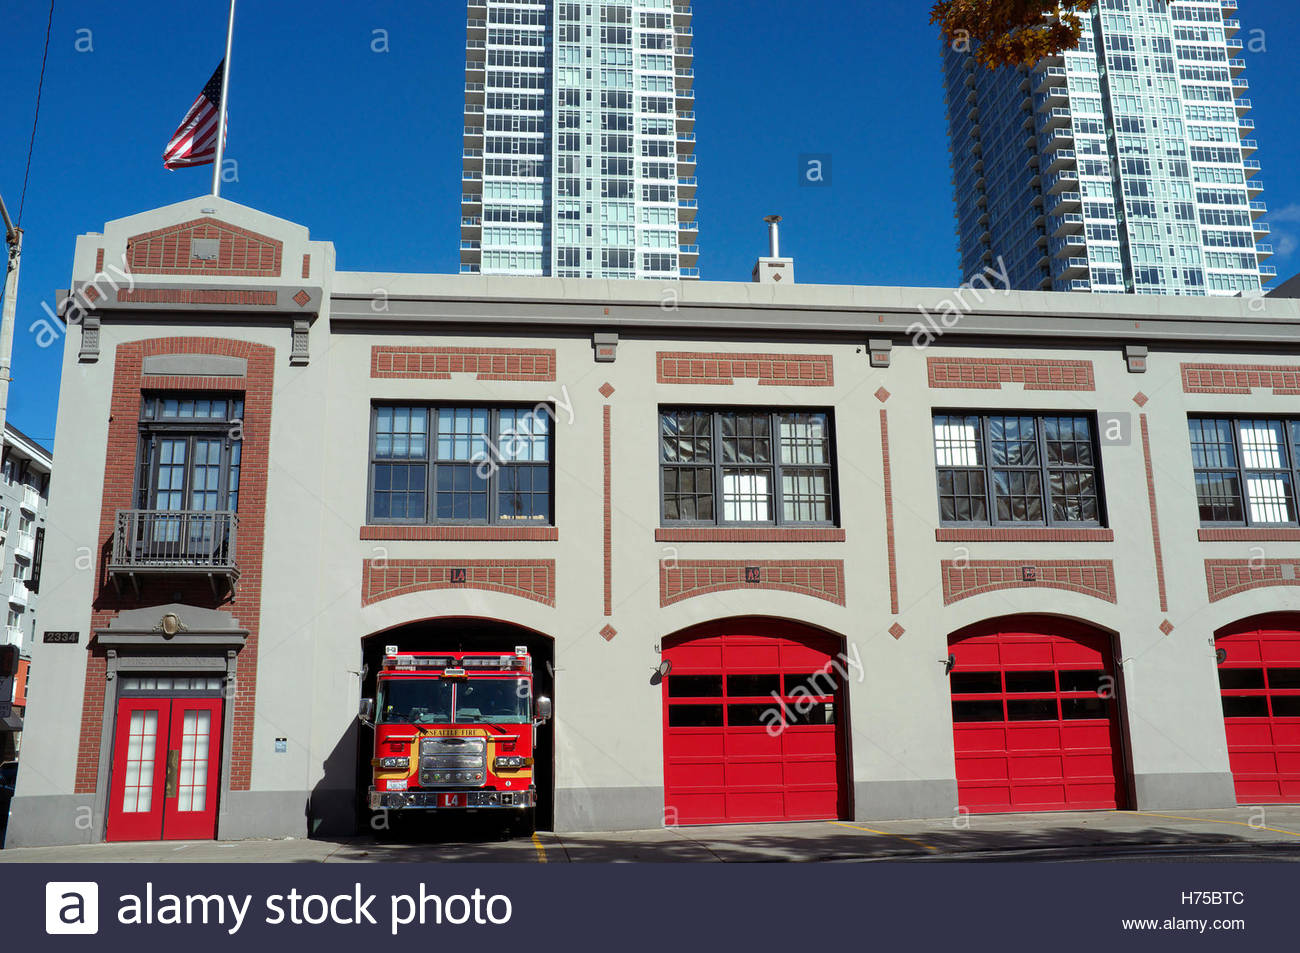 City of Seattle Fire Station 2, in Seattle, Washington State, USA.Stock Photo